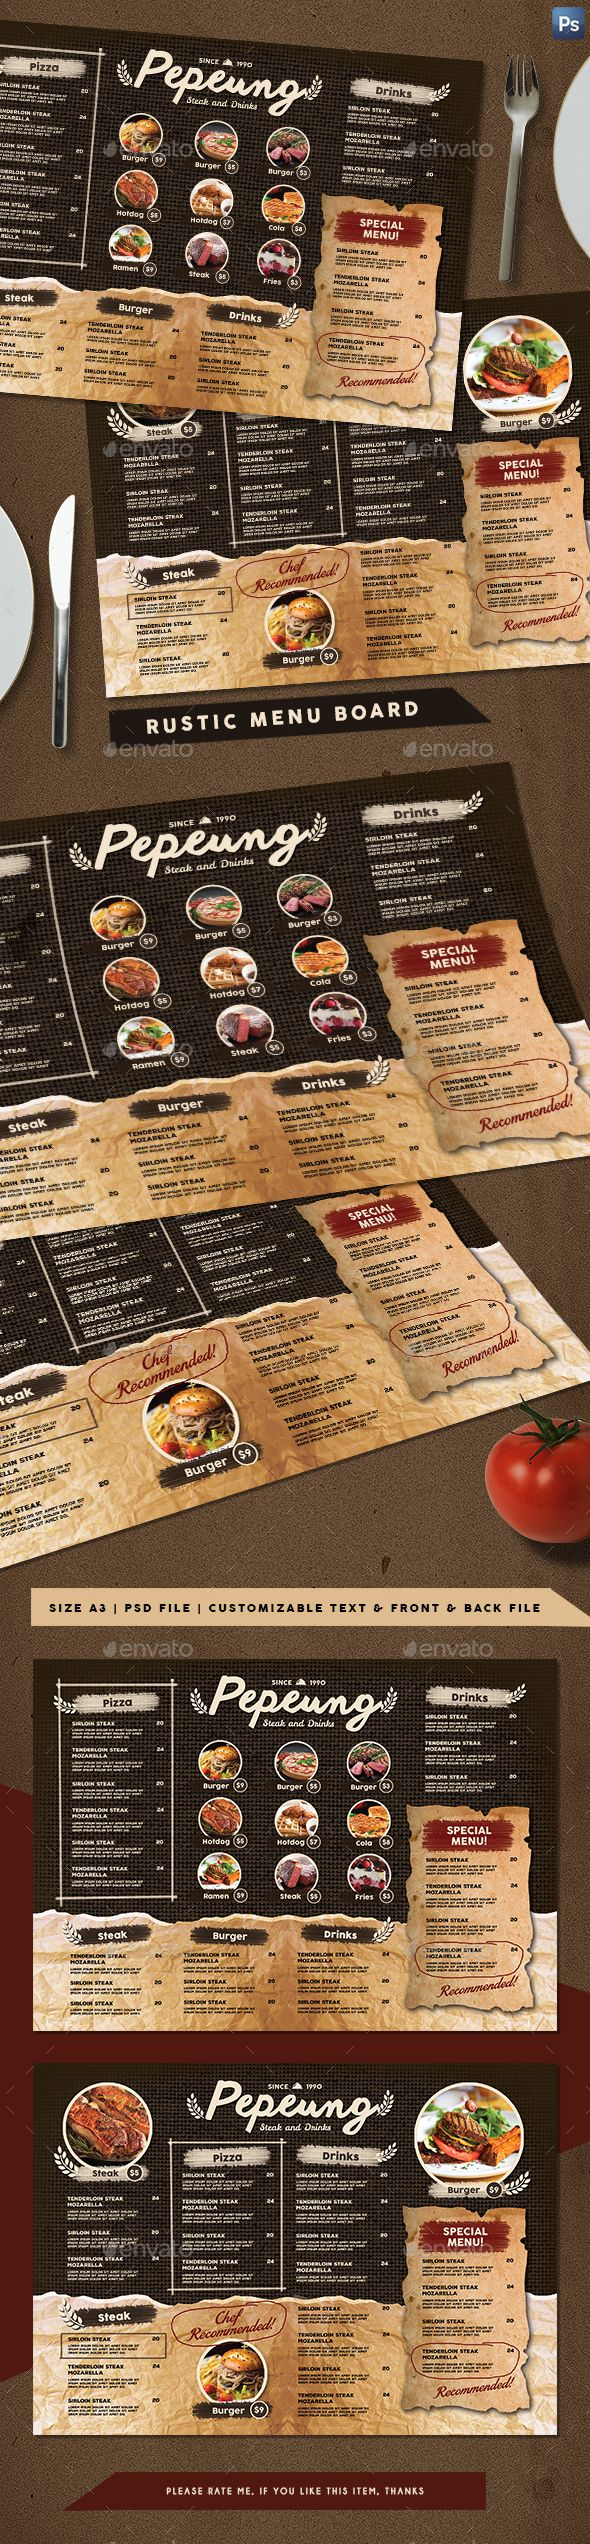 Rustic Cafe Menu Board | Cafe menu boards, Rustic cafe and Cafe menu